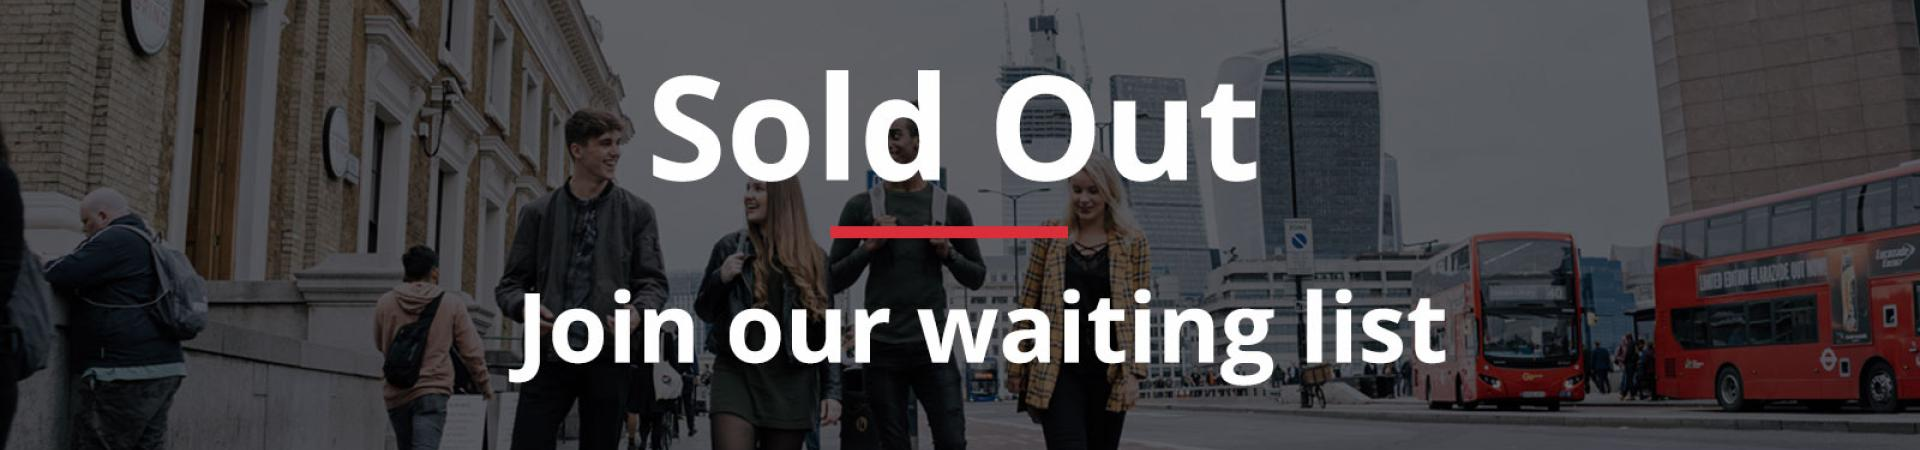 Don Gratton House Sold Out - join our waiting list